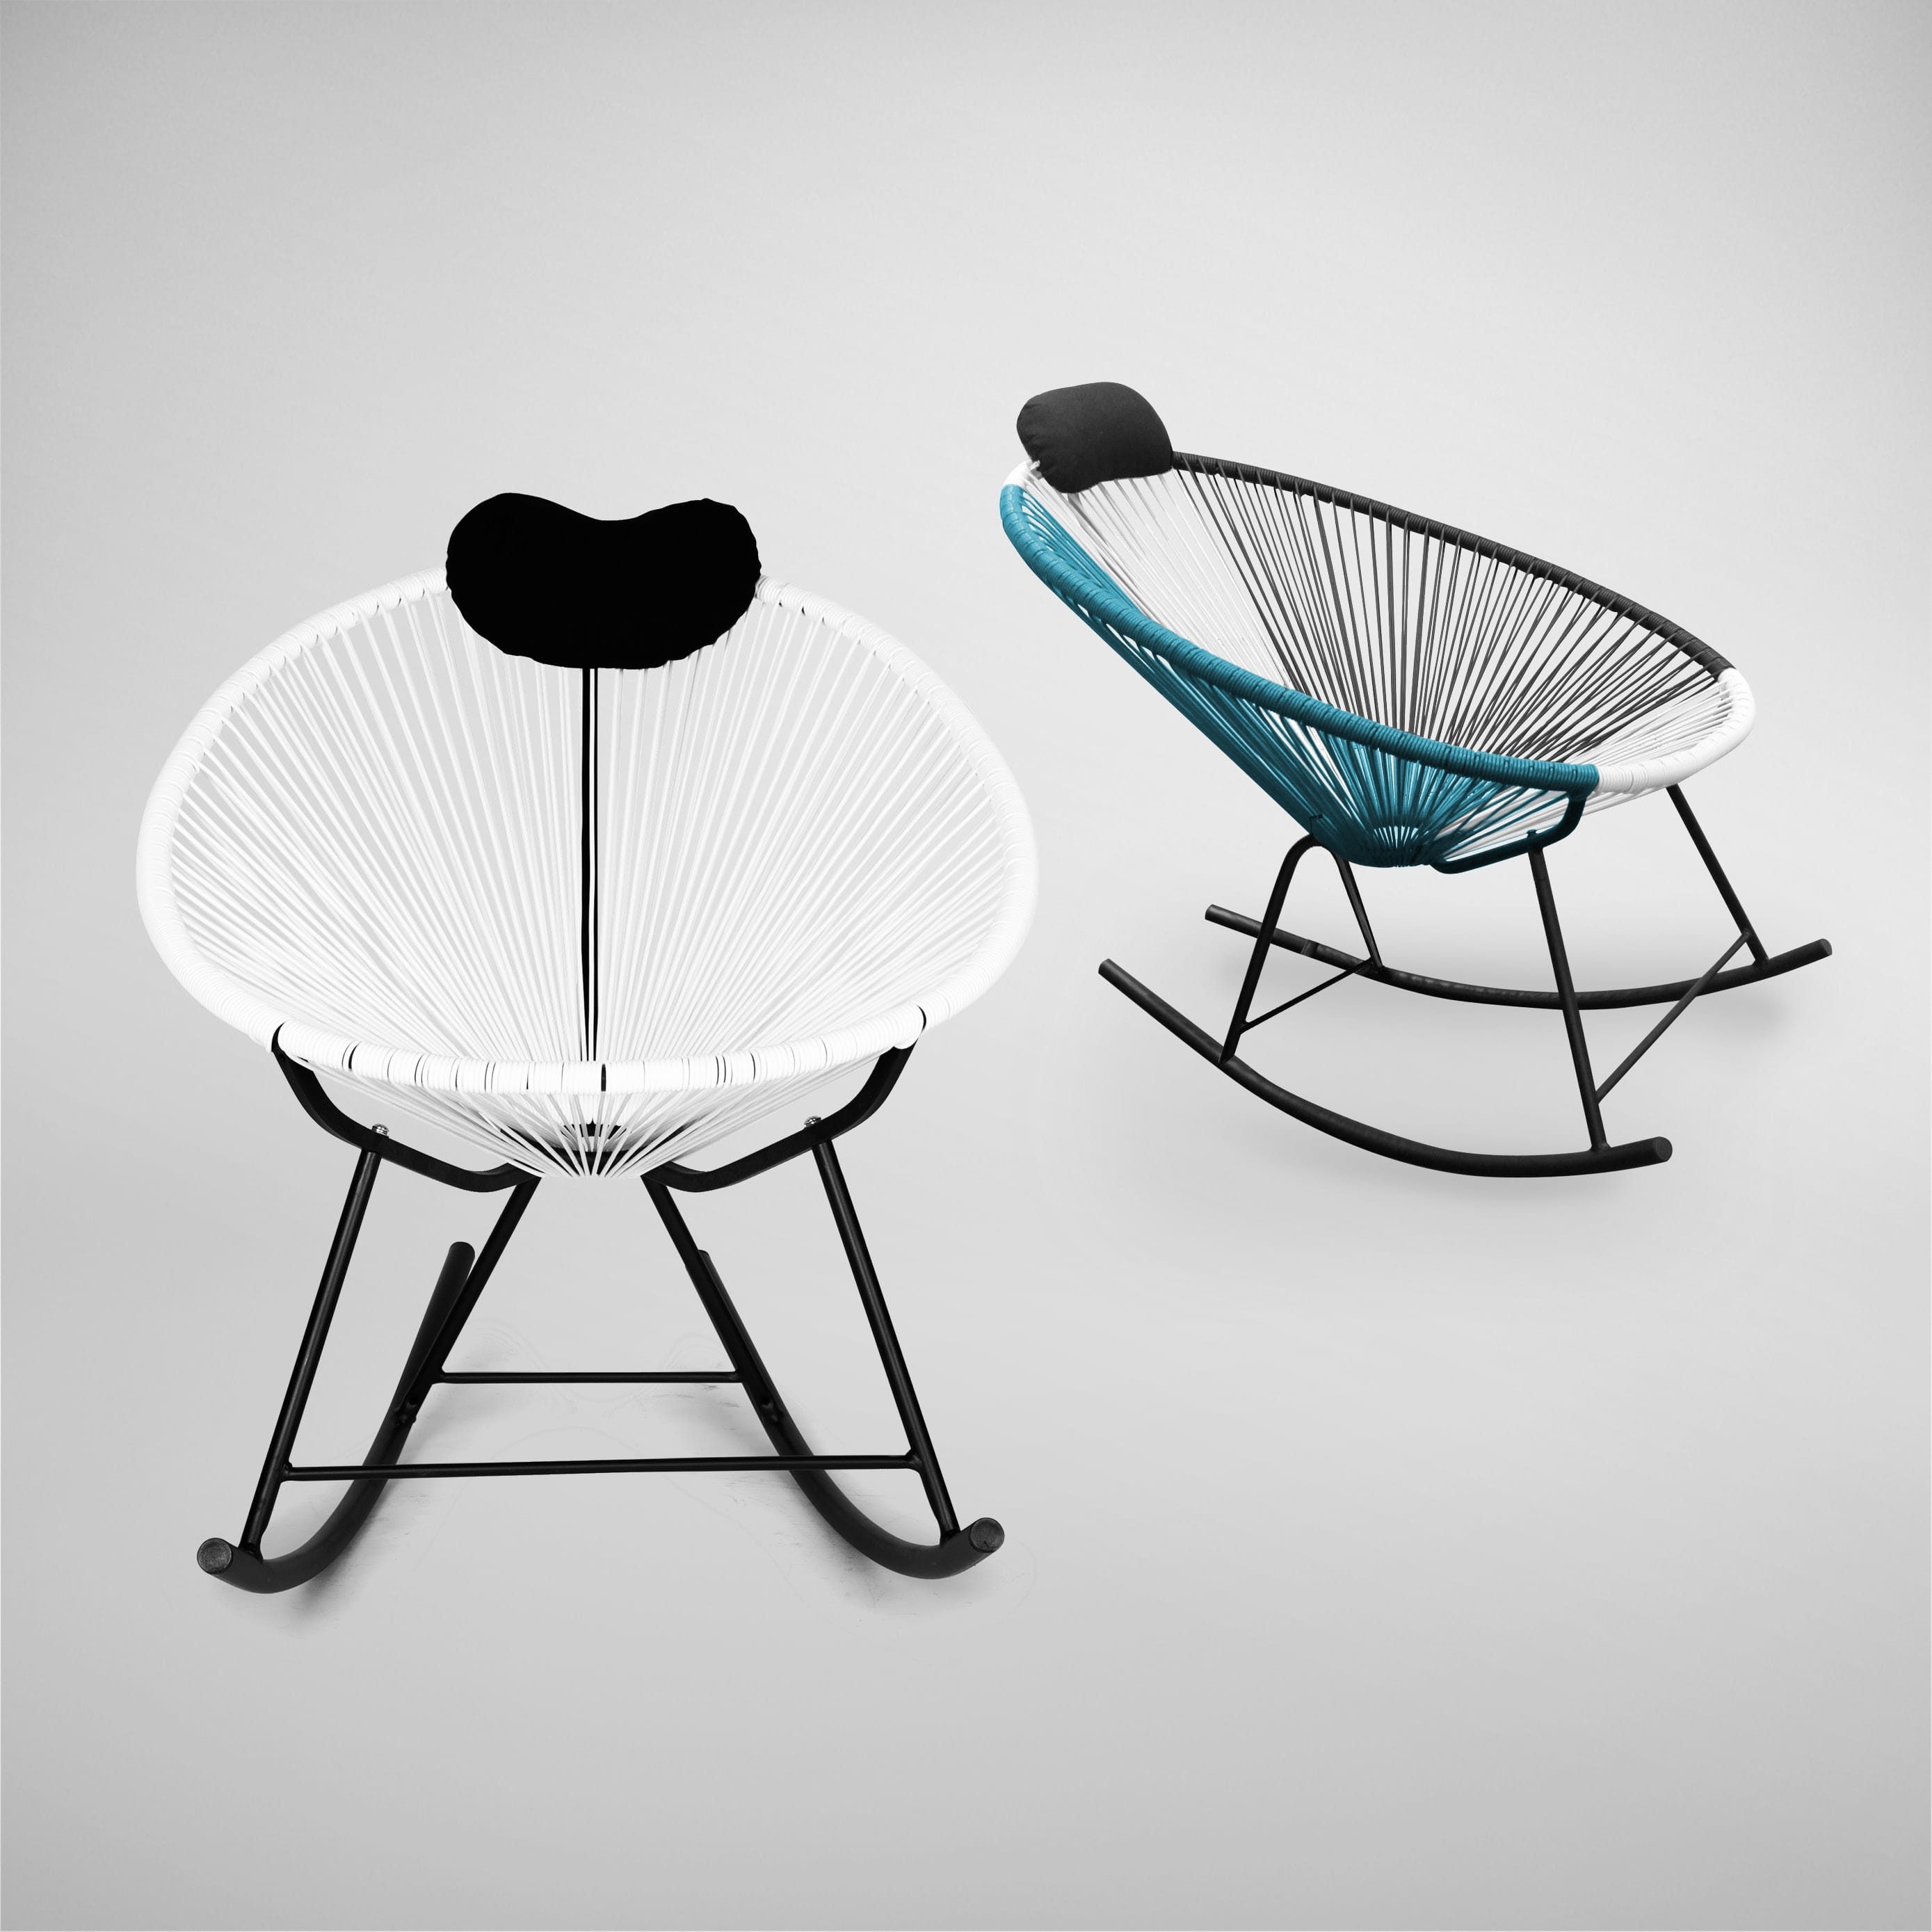 Breathe Rocking Chair Comfort Design The Chair Table People